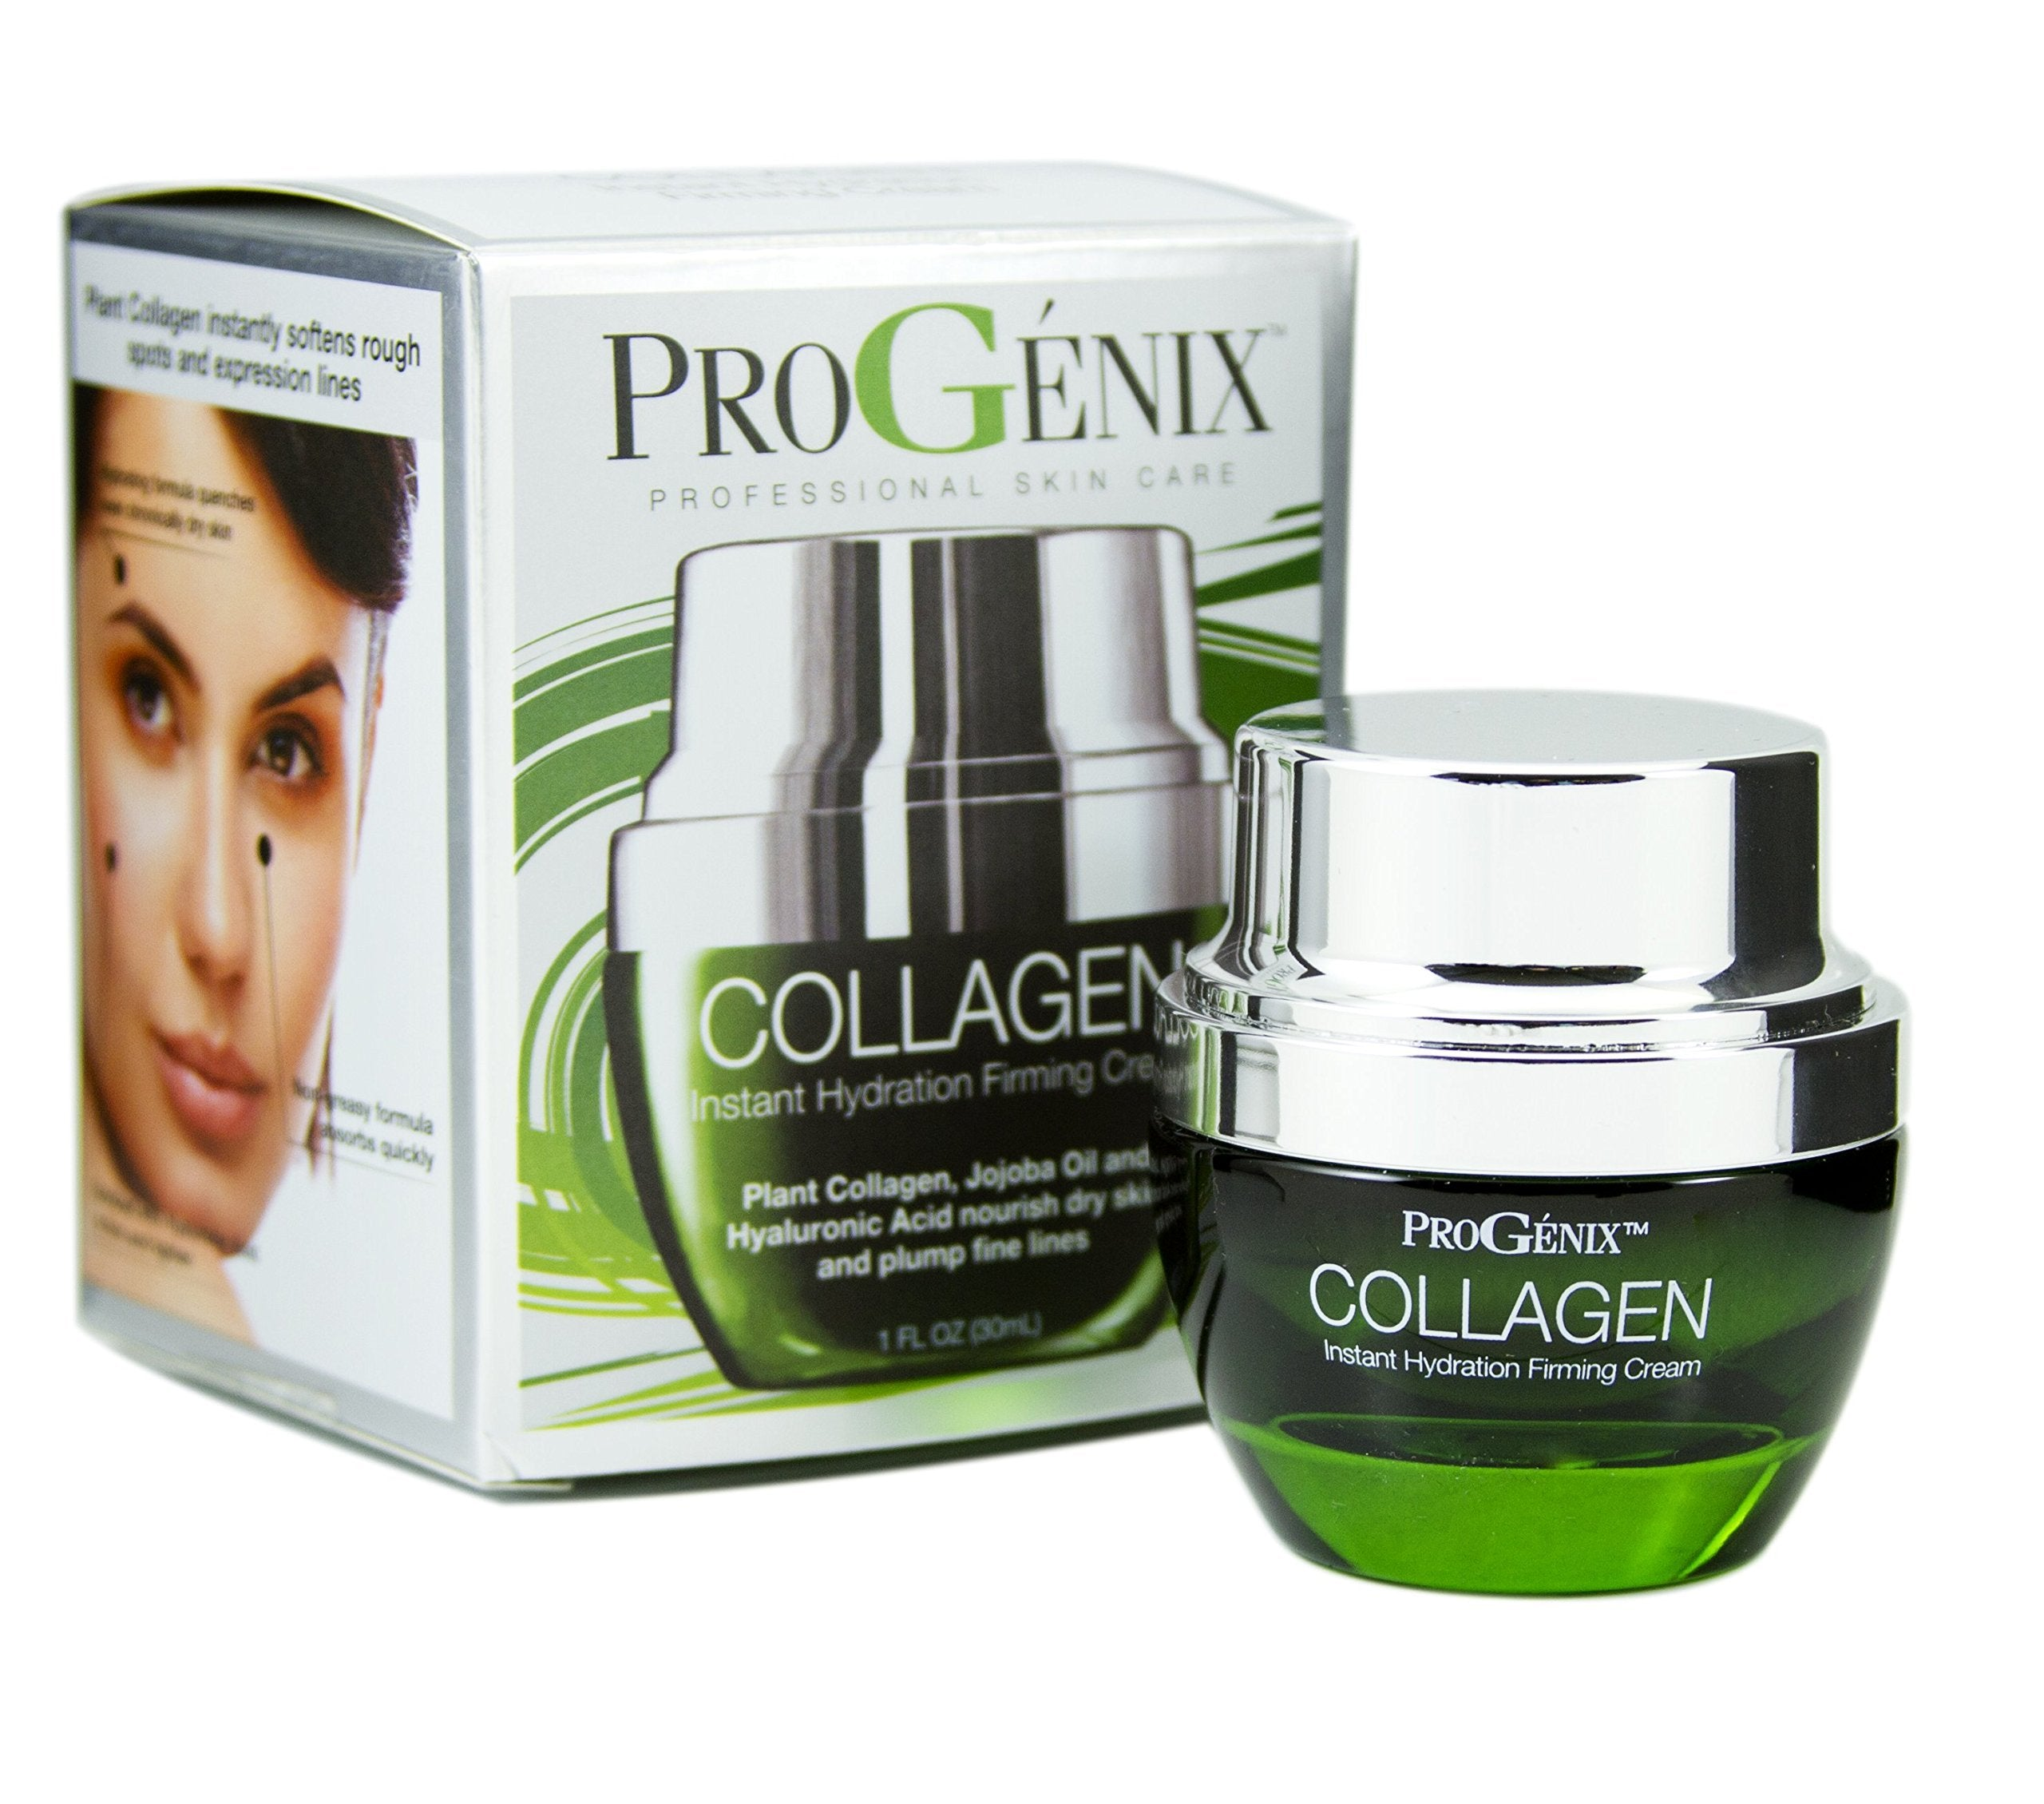 03c50773f5bf Progenix Collagen Instant Hydration Firming and Plumping Face Cream with  Hyaluronic Acid and Jojo...